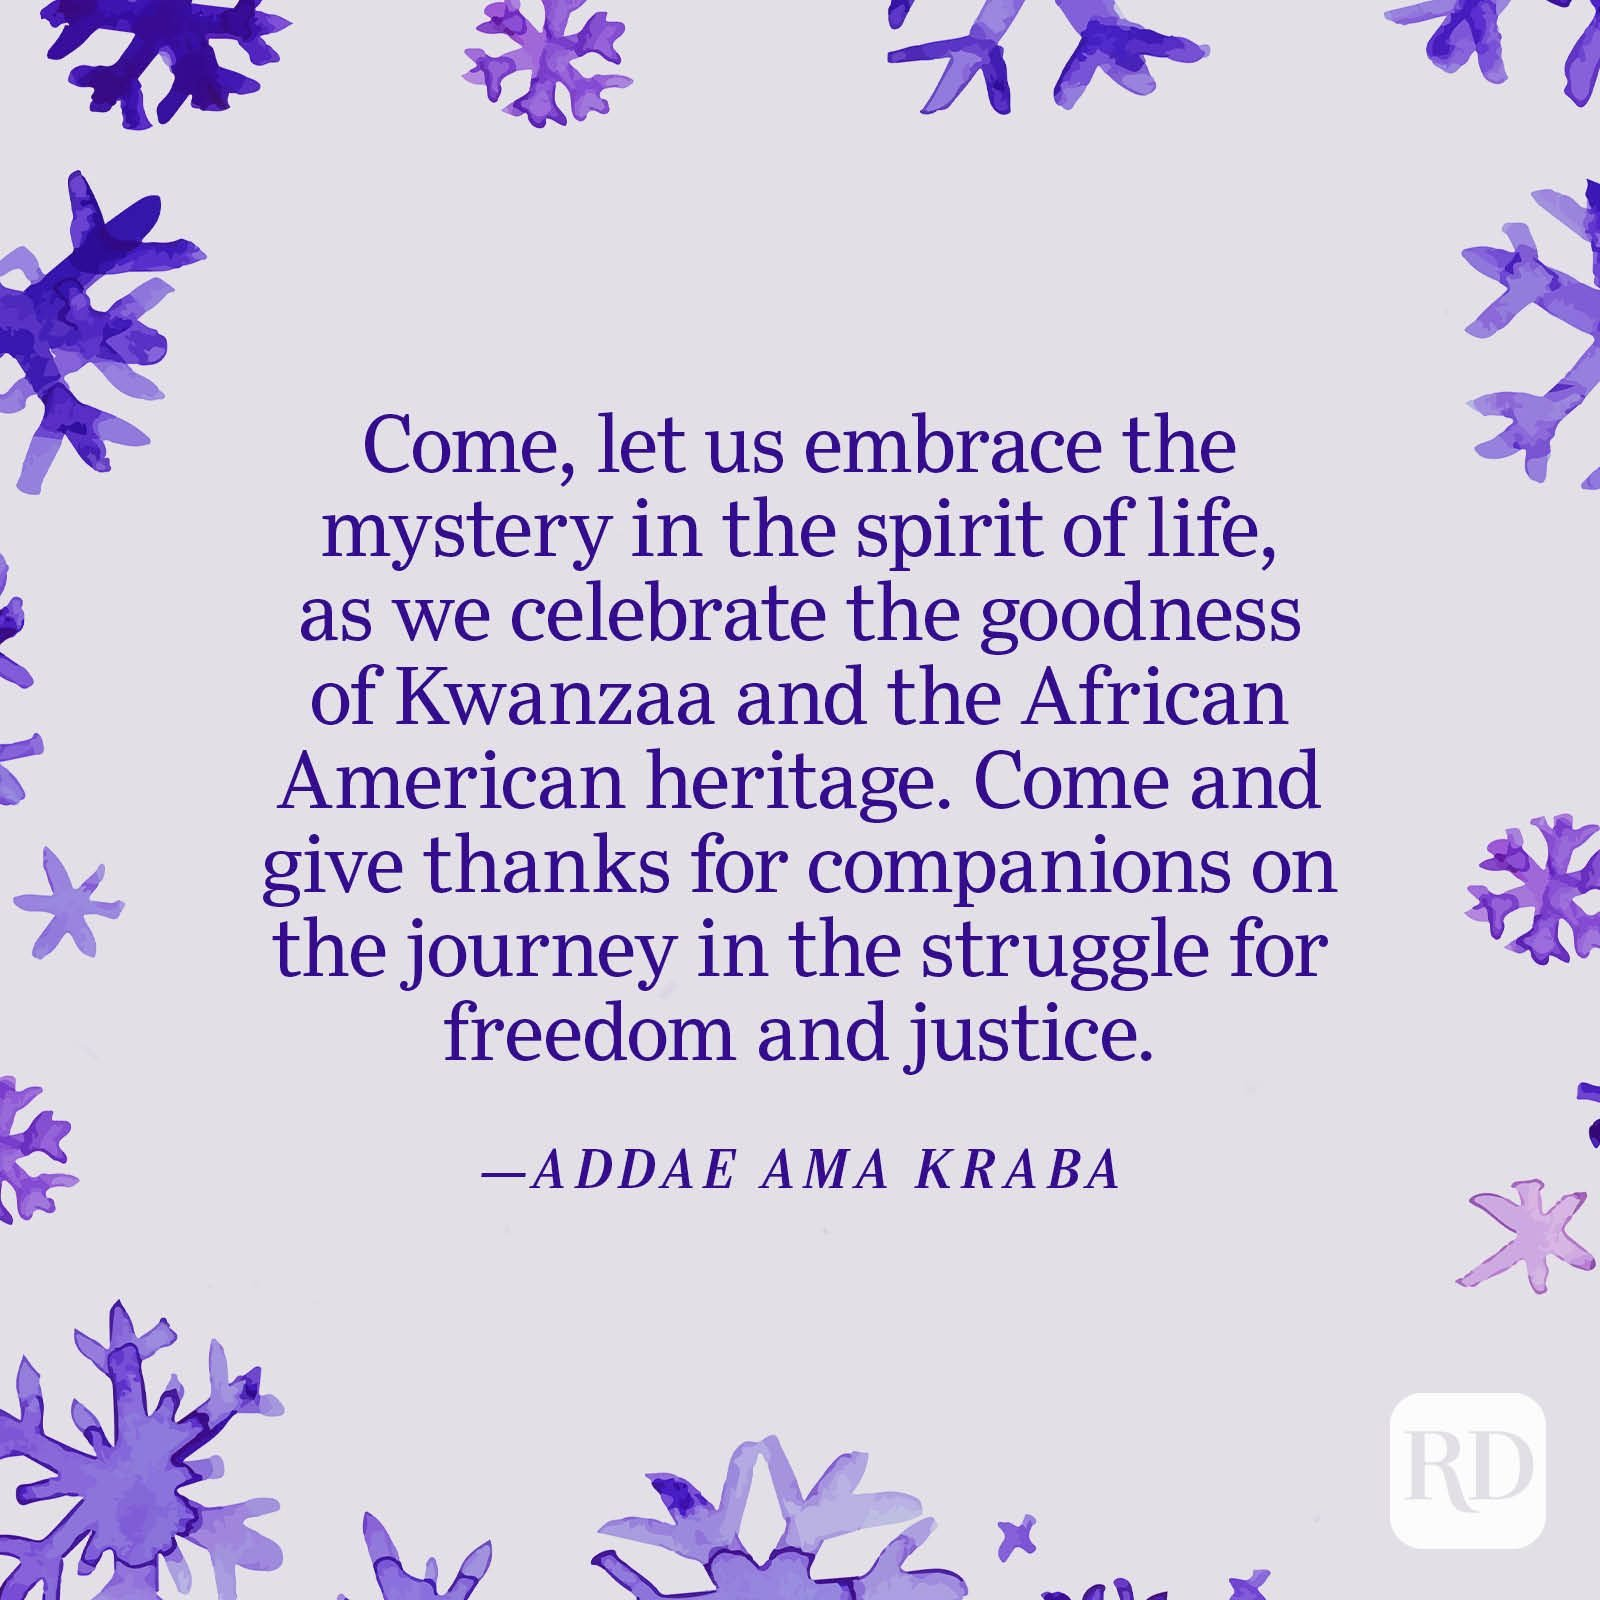 """""""Come, let us embrace the mystery in the spirit of life, as we celebrate the goodness of Kwanzaa and the African American heritage. Come and give thanks for companions on the journey in the struggle for freedom and justice."""" —Addae Ama Kraba"""